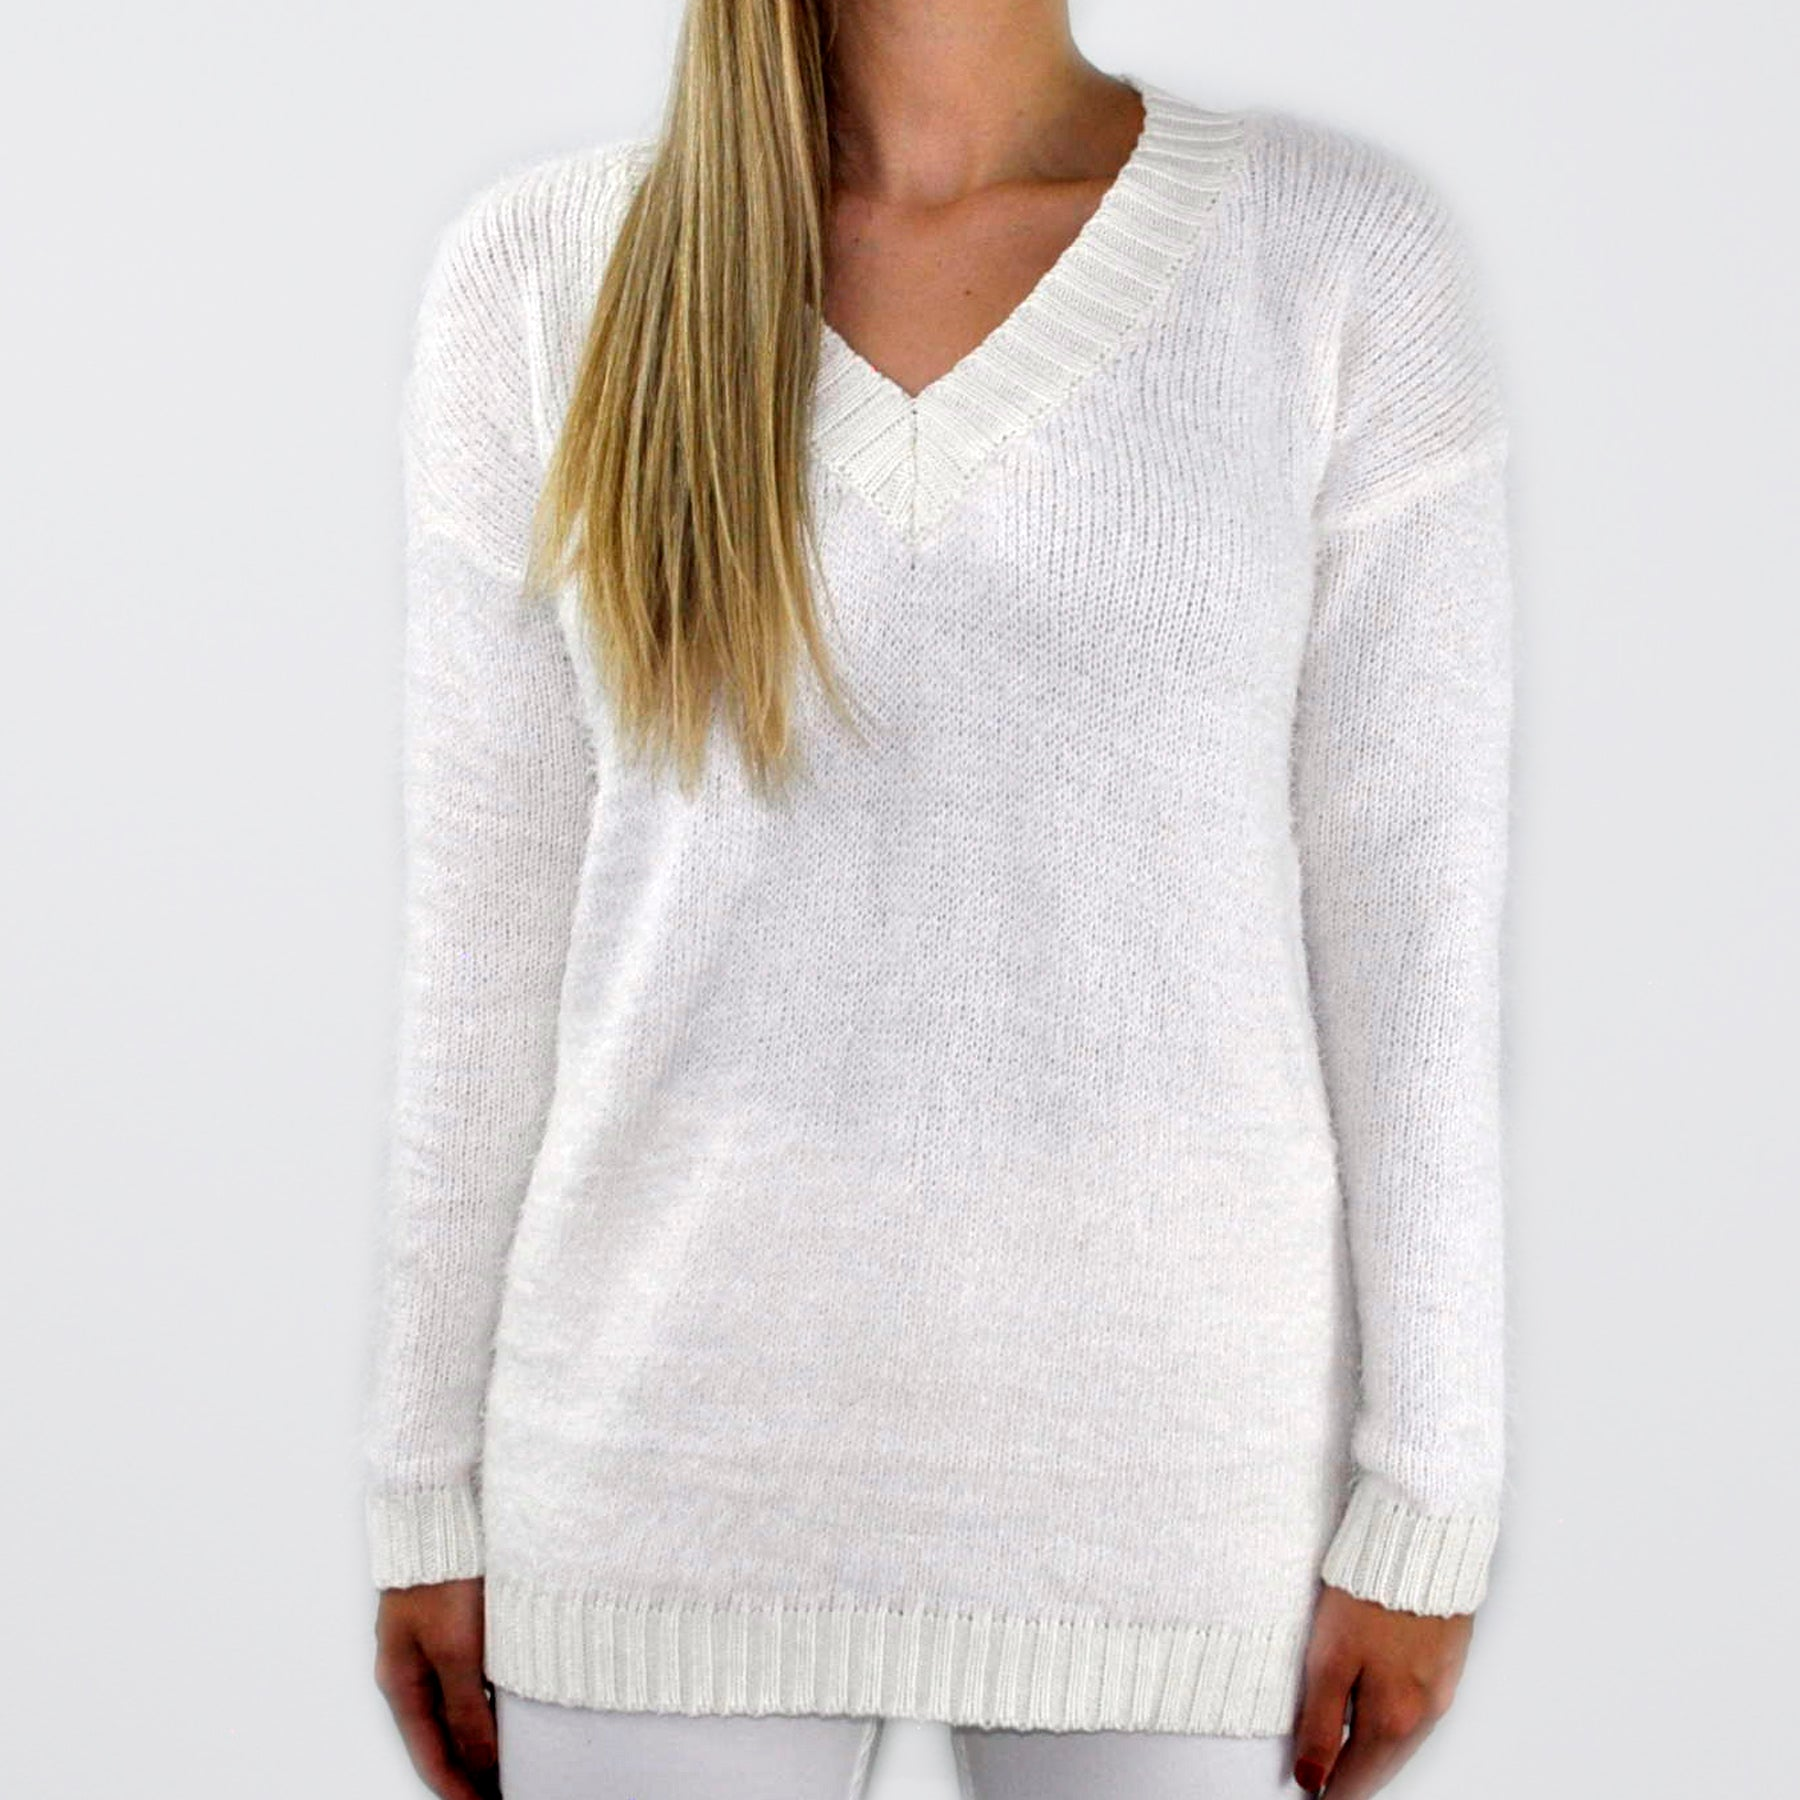 Furry Knit V-Neck Sweater - SOИDER BOUTIQUE